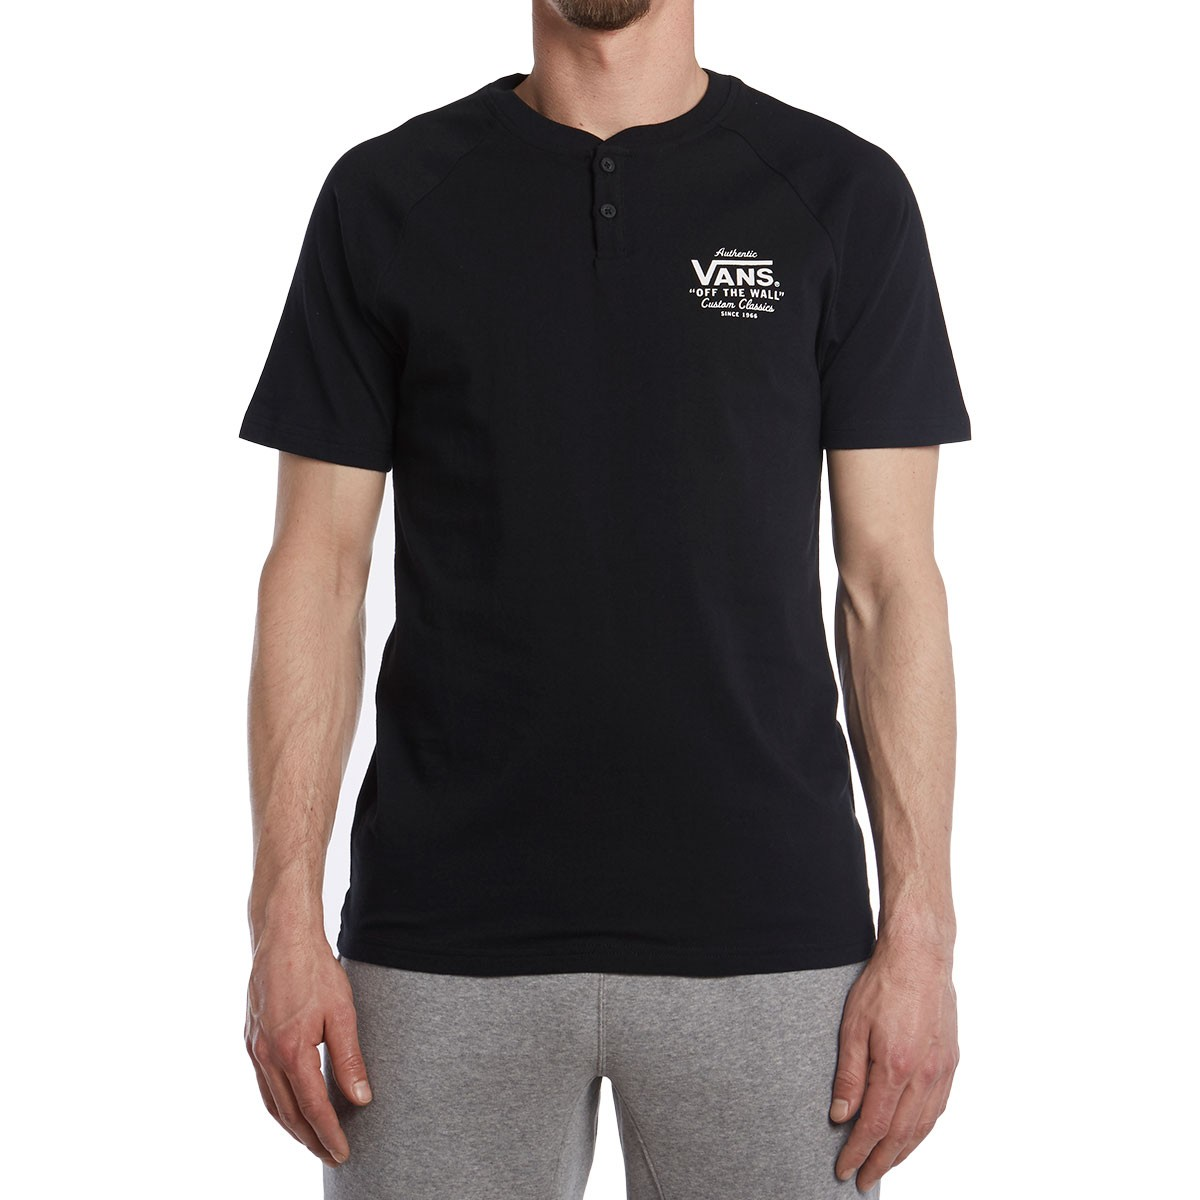 c5befc461b Vans Holder Street Henley T-Shirt - Black